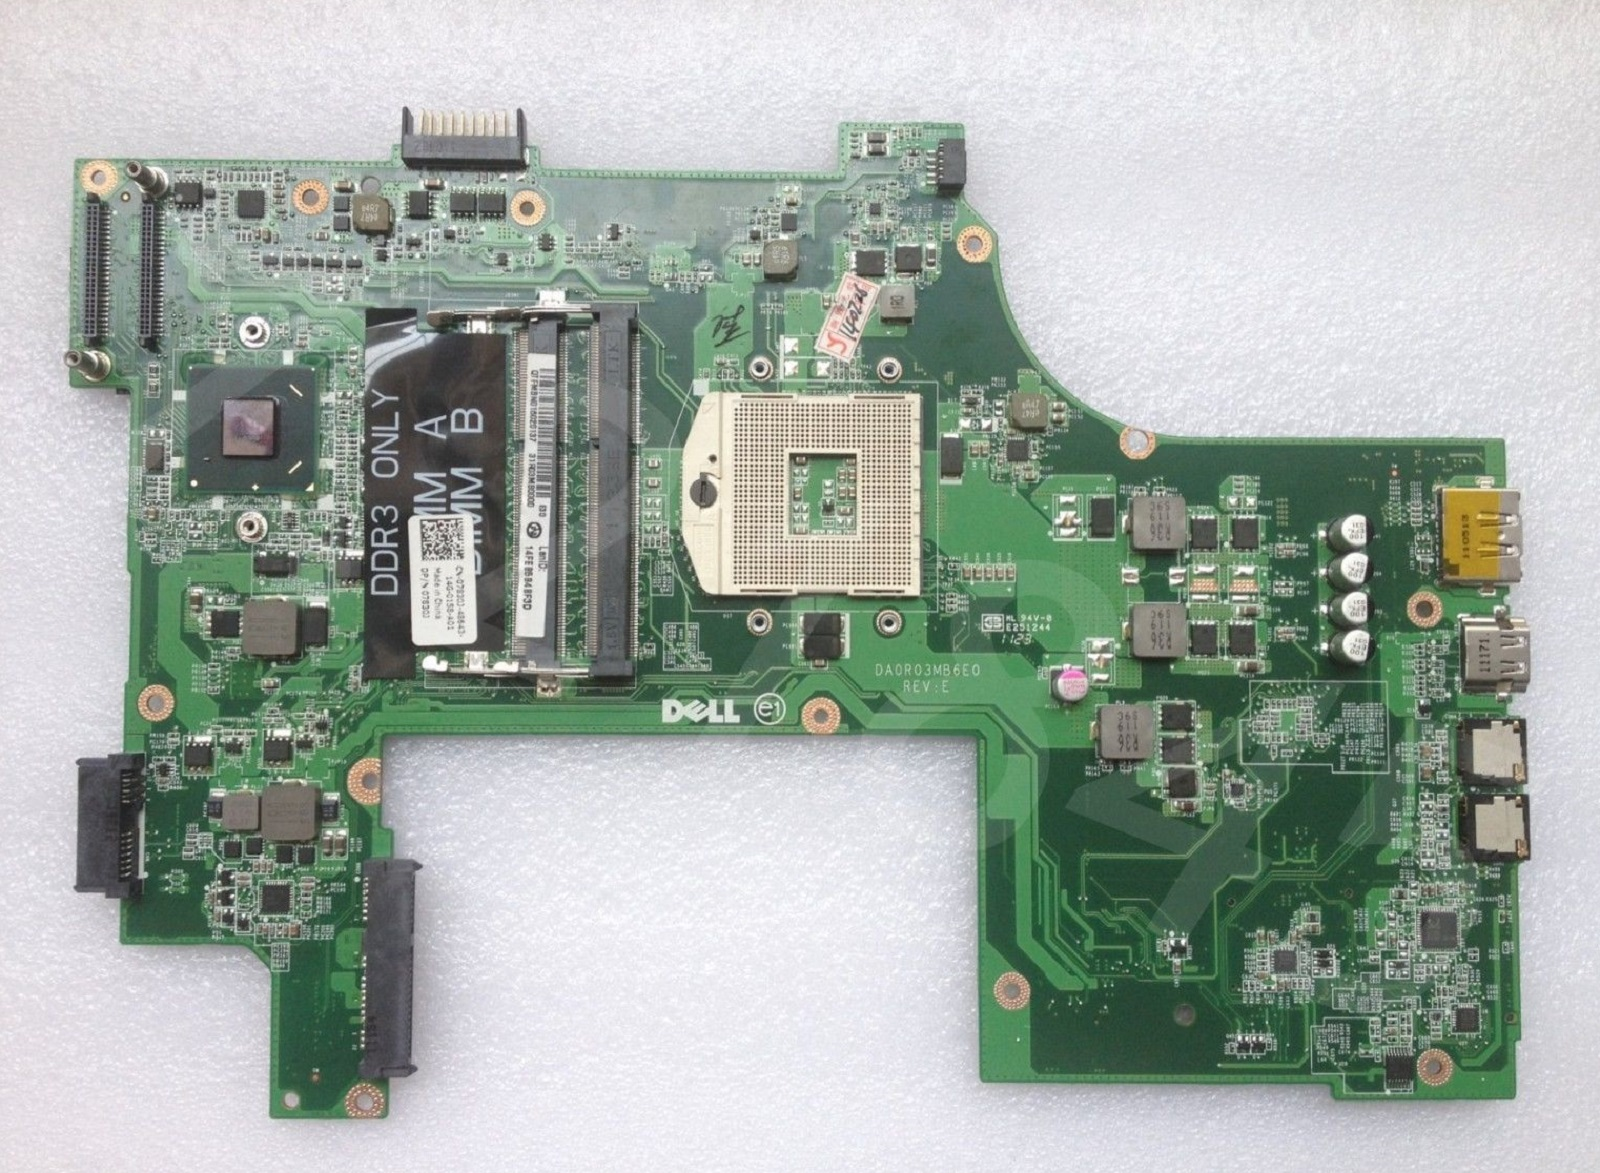 Dell Inspirion N7110 17r Intel Motherboard 7830J CN-07830J DA0R03MB6E1 Tested OK